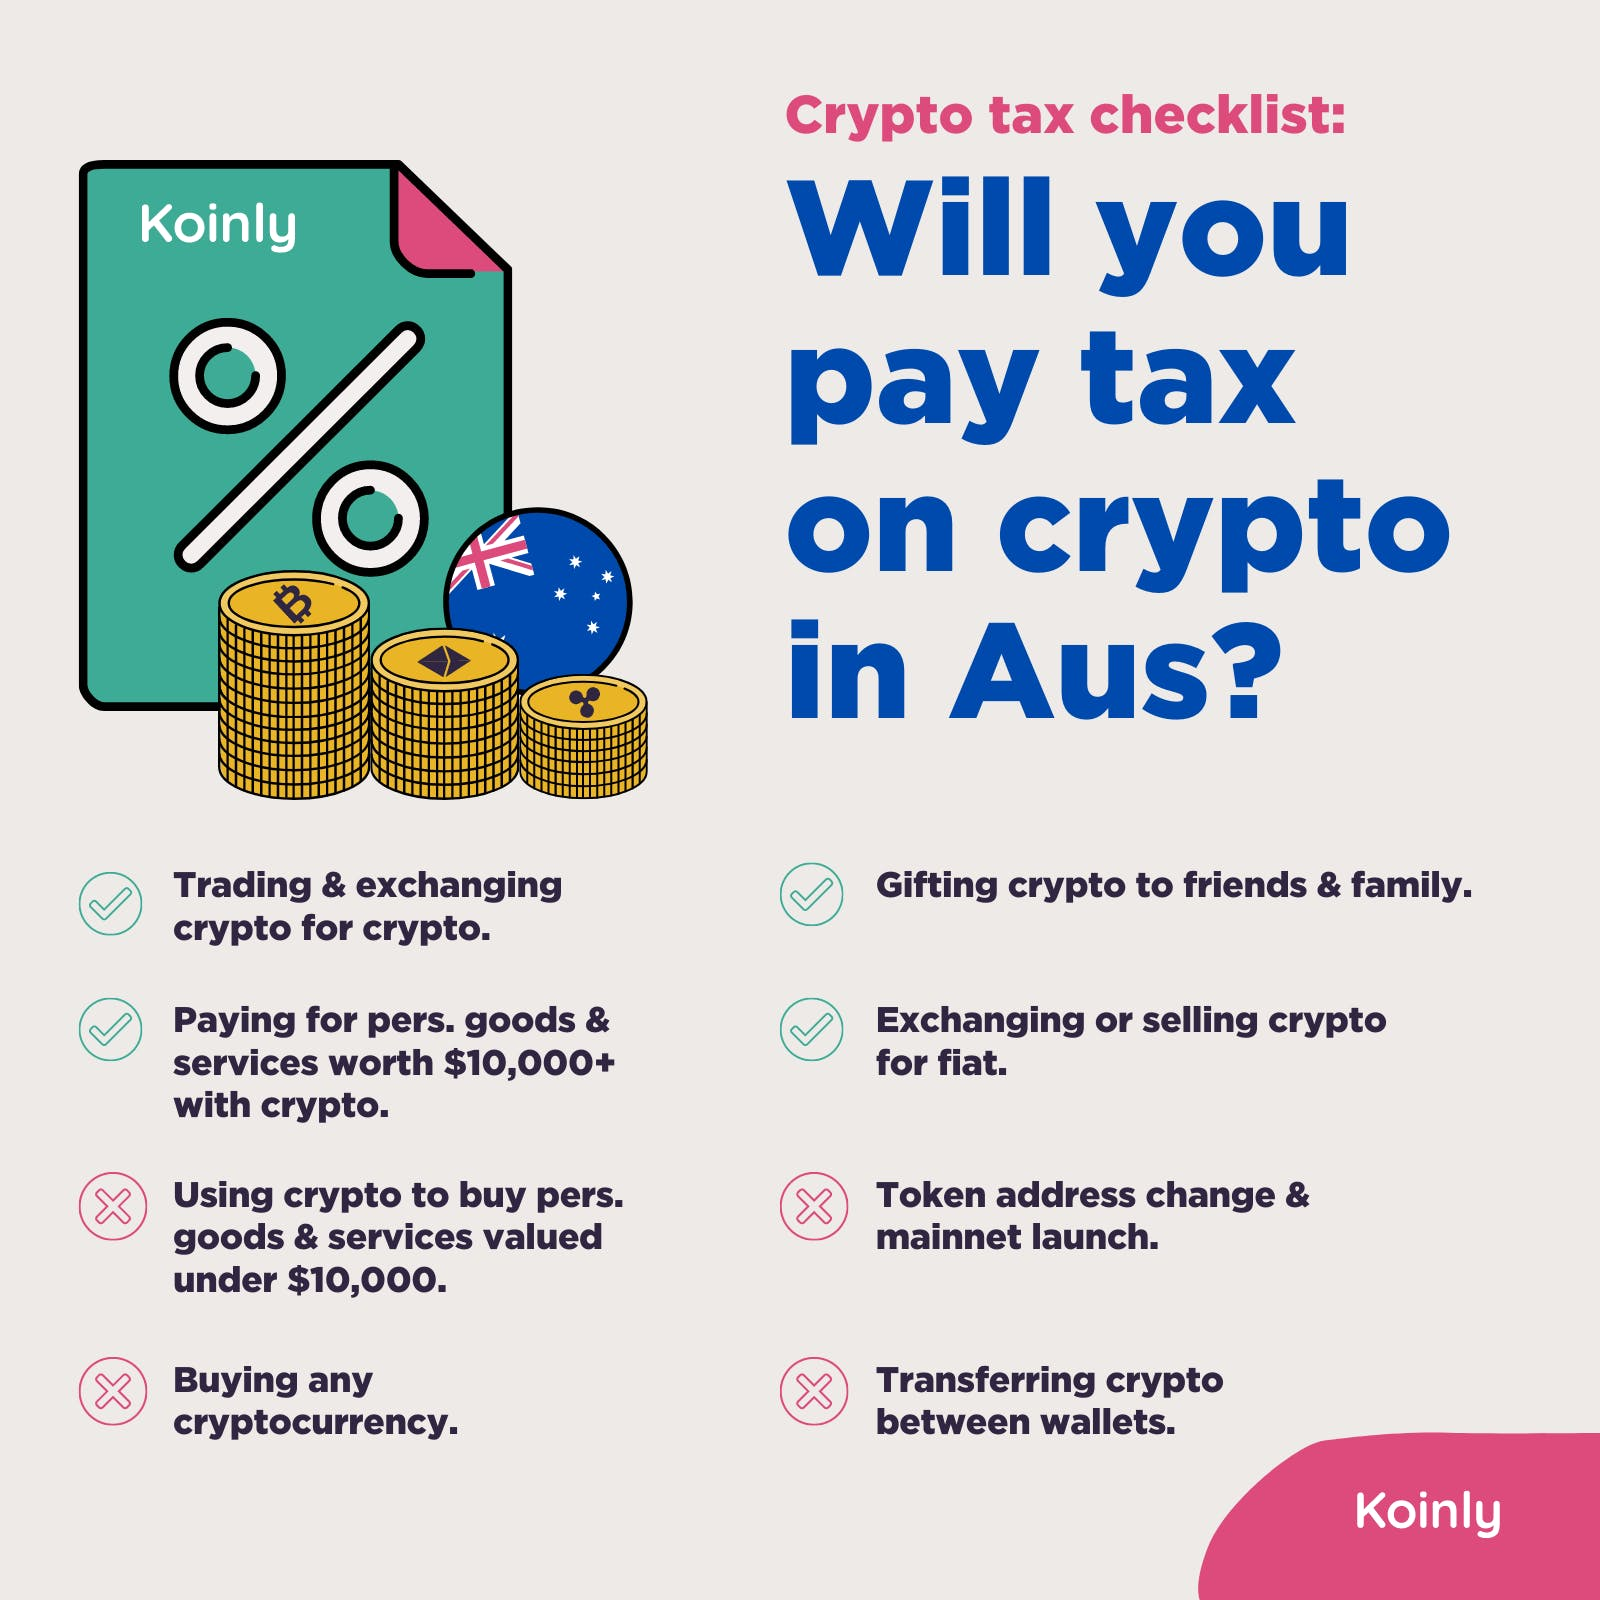 What taxes apply to cryptocurrency in Australia